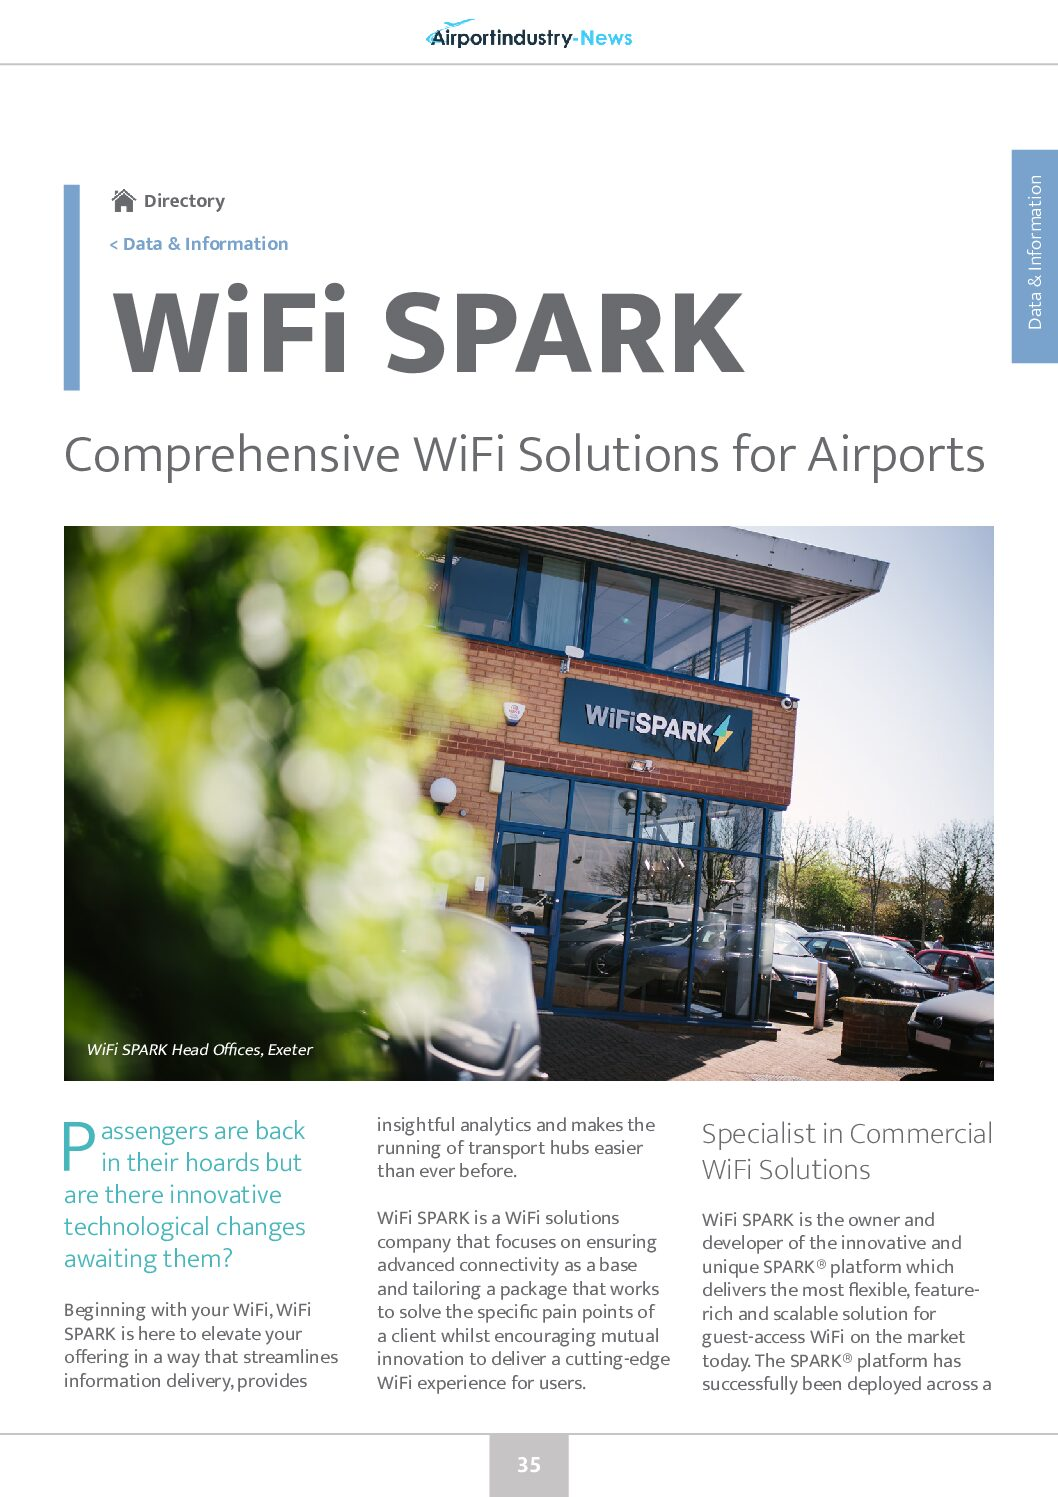 WiFi SPARK – Comprehensive WiFi Solutions for Airports